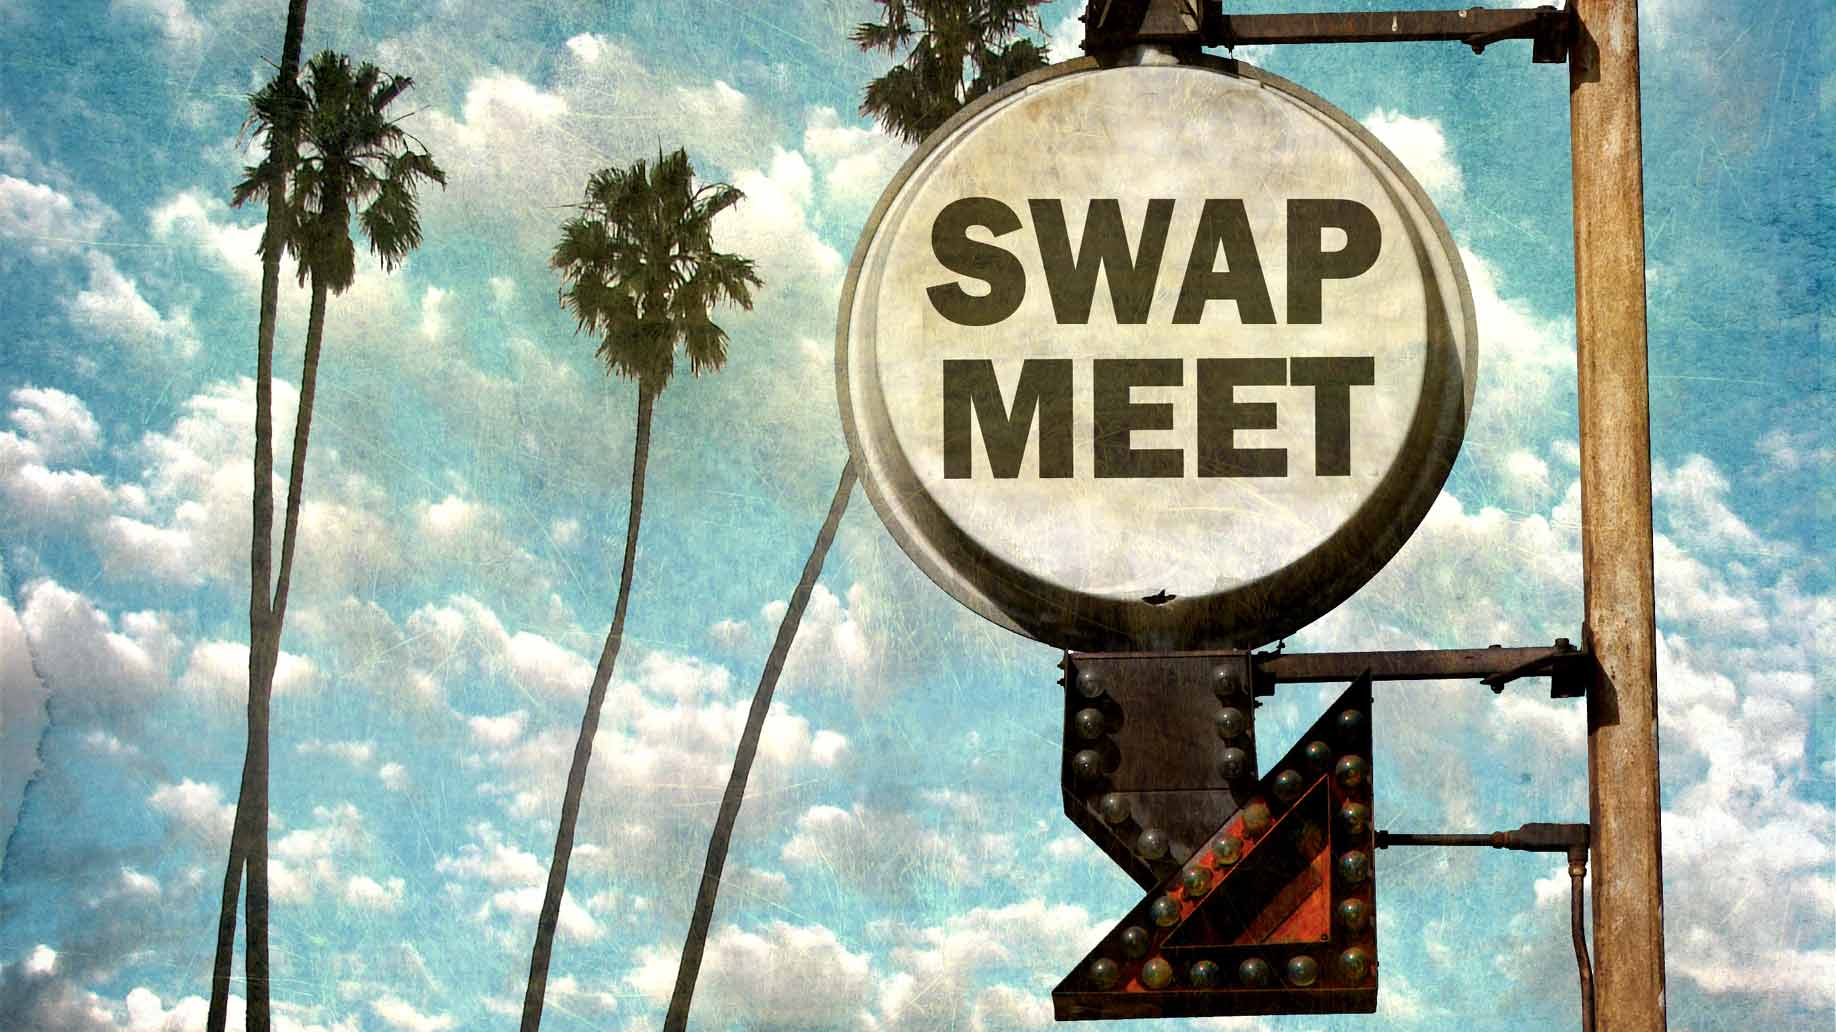 swap meet sign